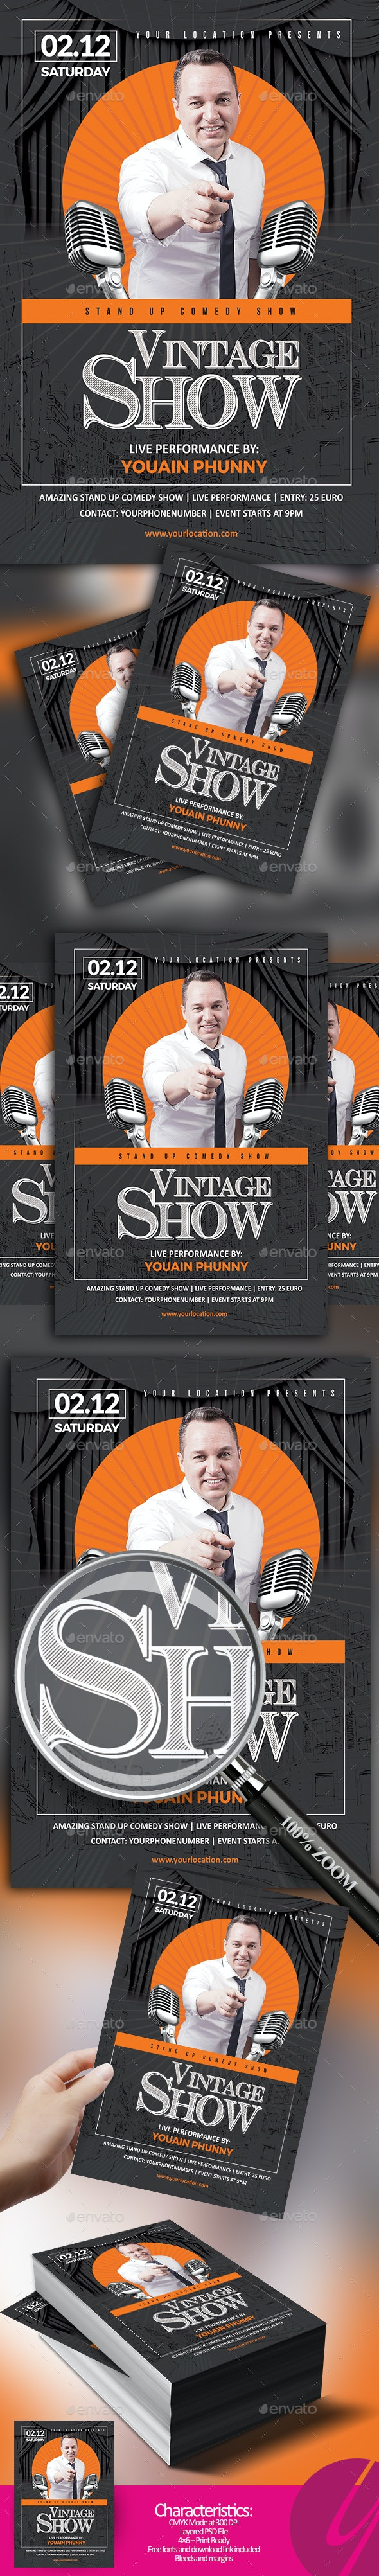 Vintage Comedy Show - Events Flyers